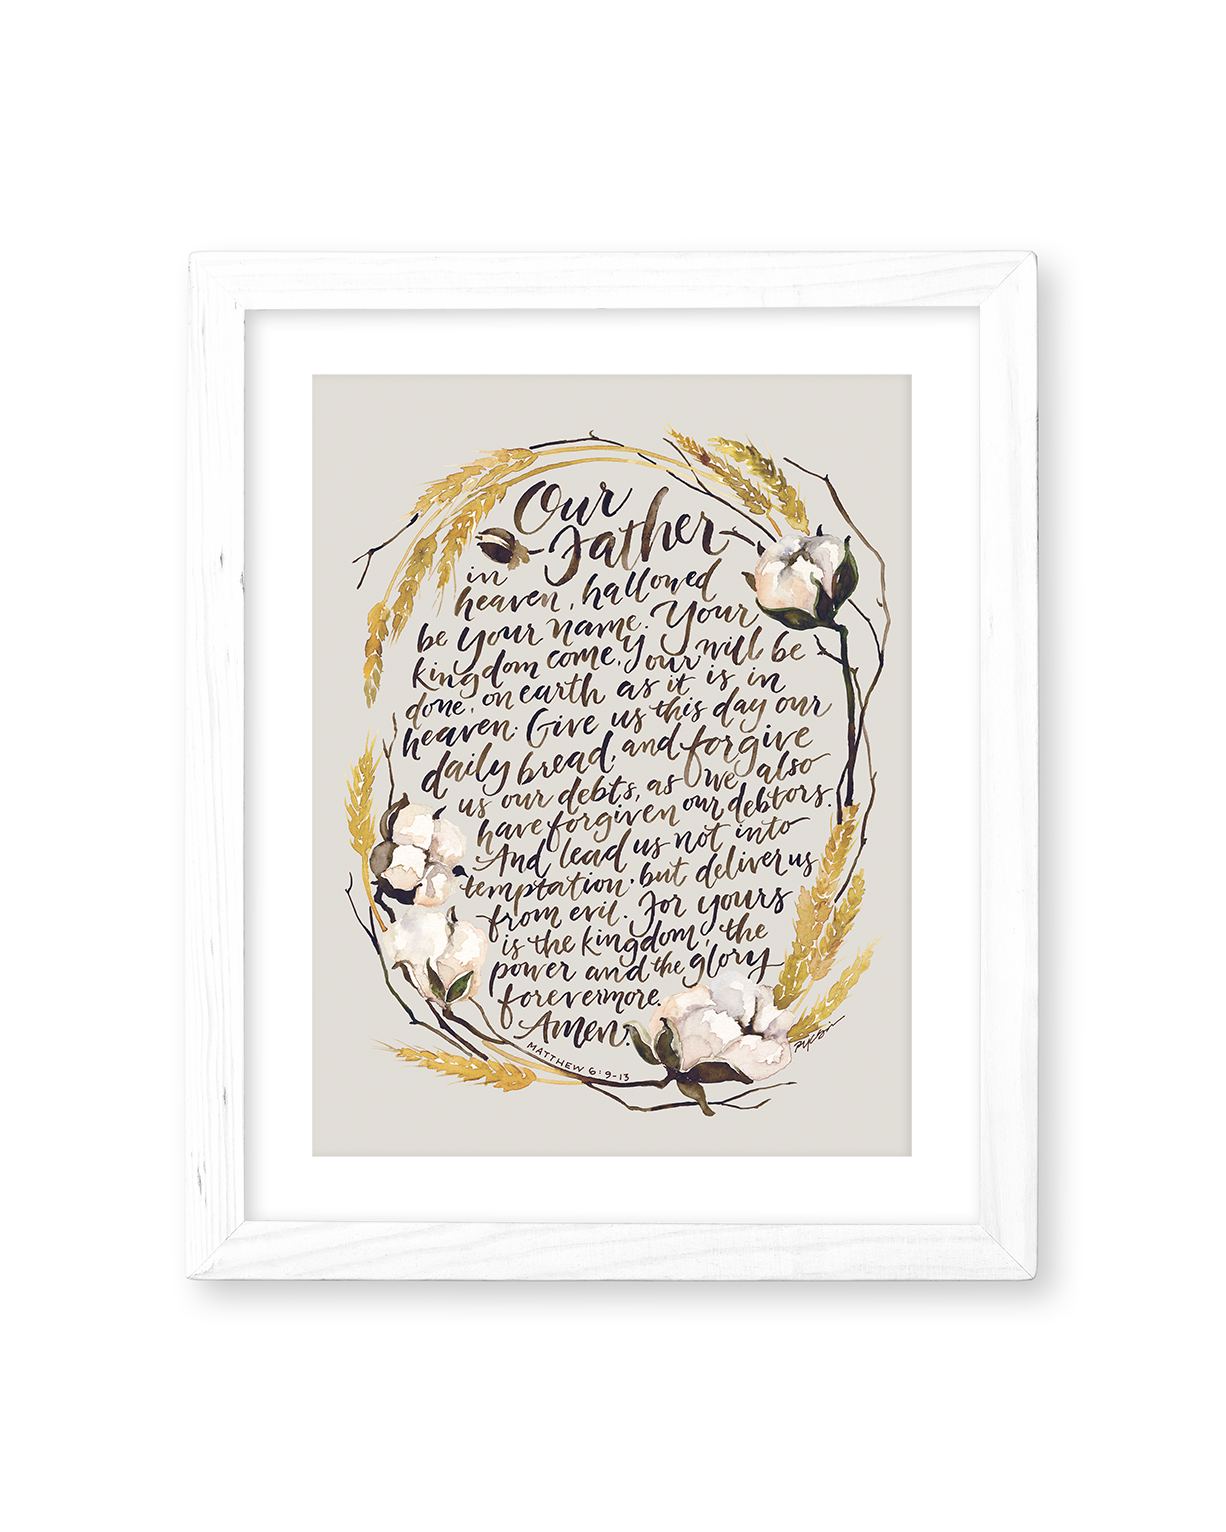 image about Printable Copy of the Lord's Prayer called The Lords Prayer Print